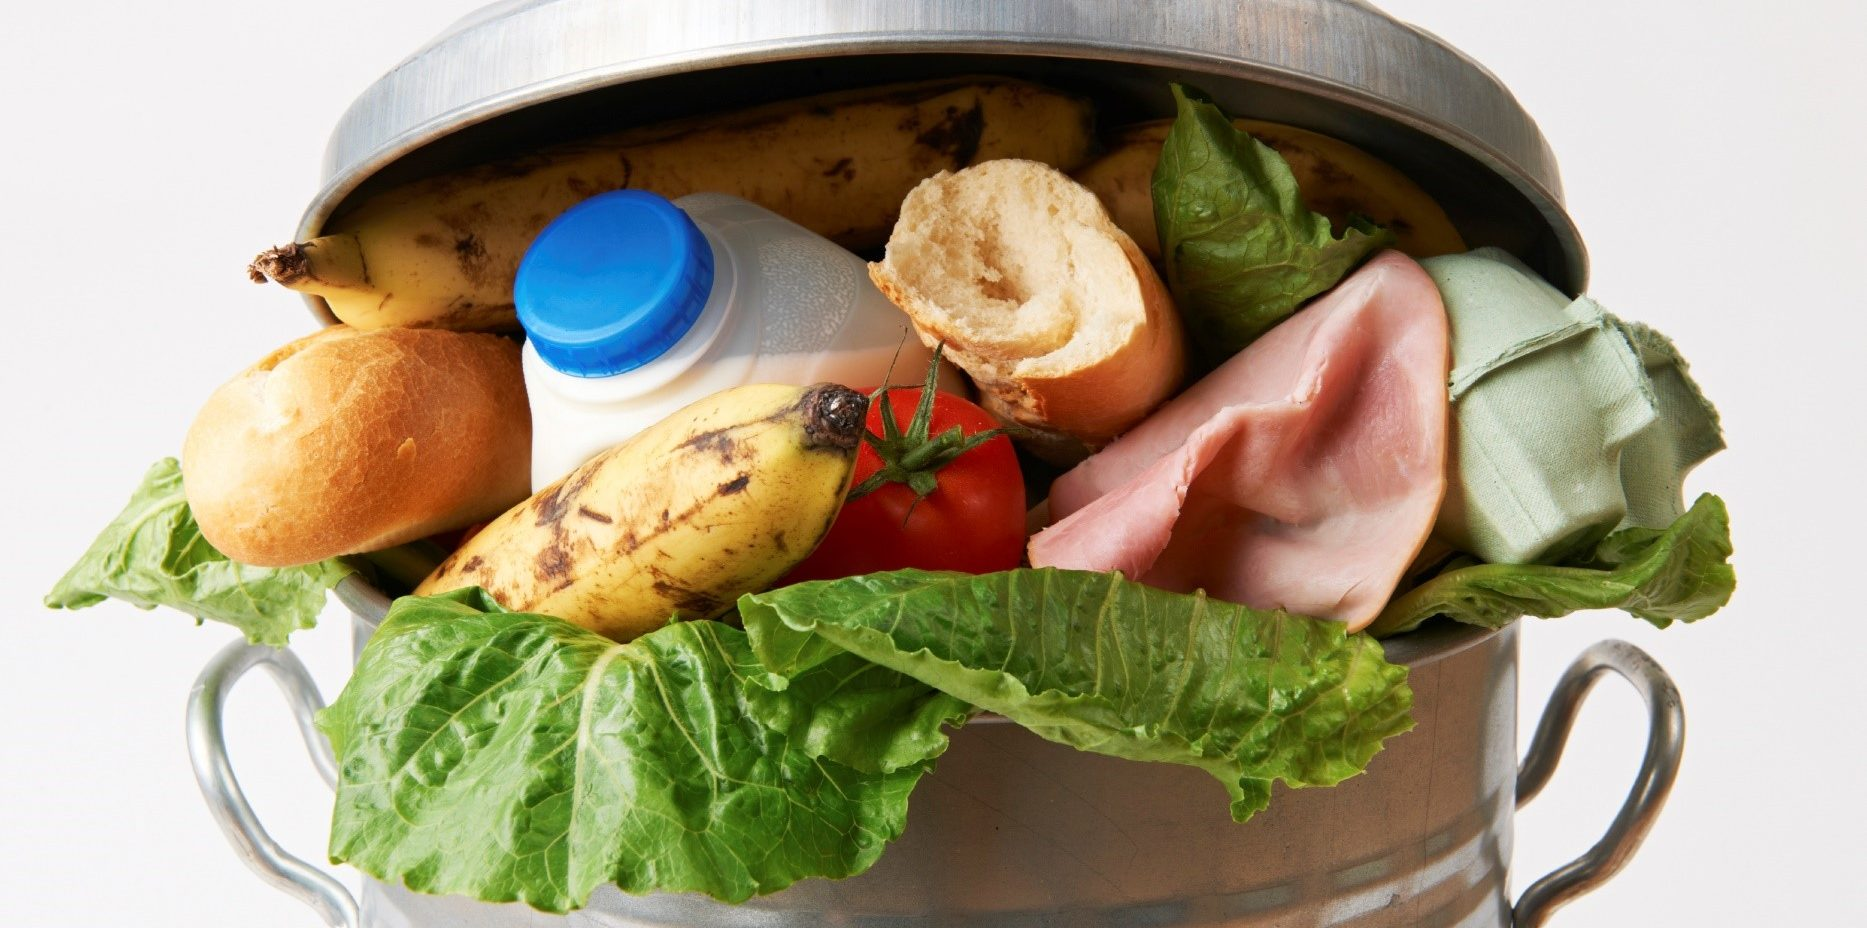 Food for naught: Using the theory of planned behaviour to better understand household food wasting behaviour.